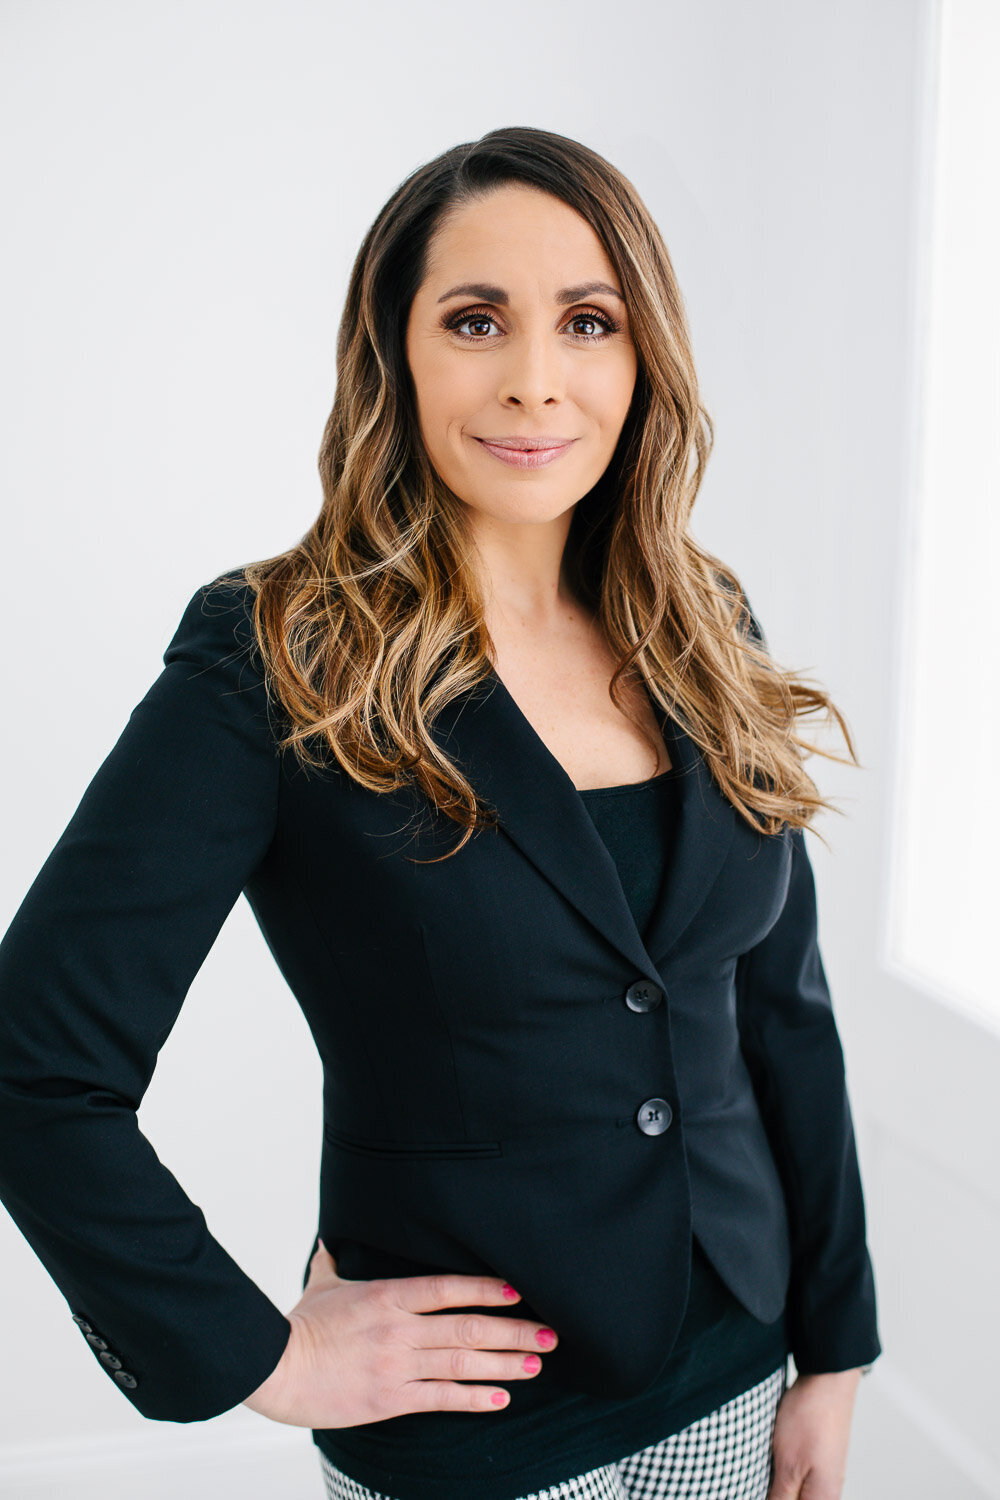 Professional business headshot of woman in a blazer